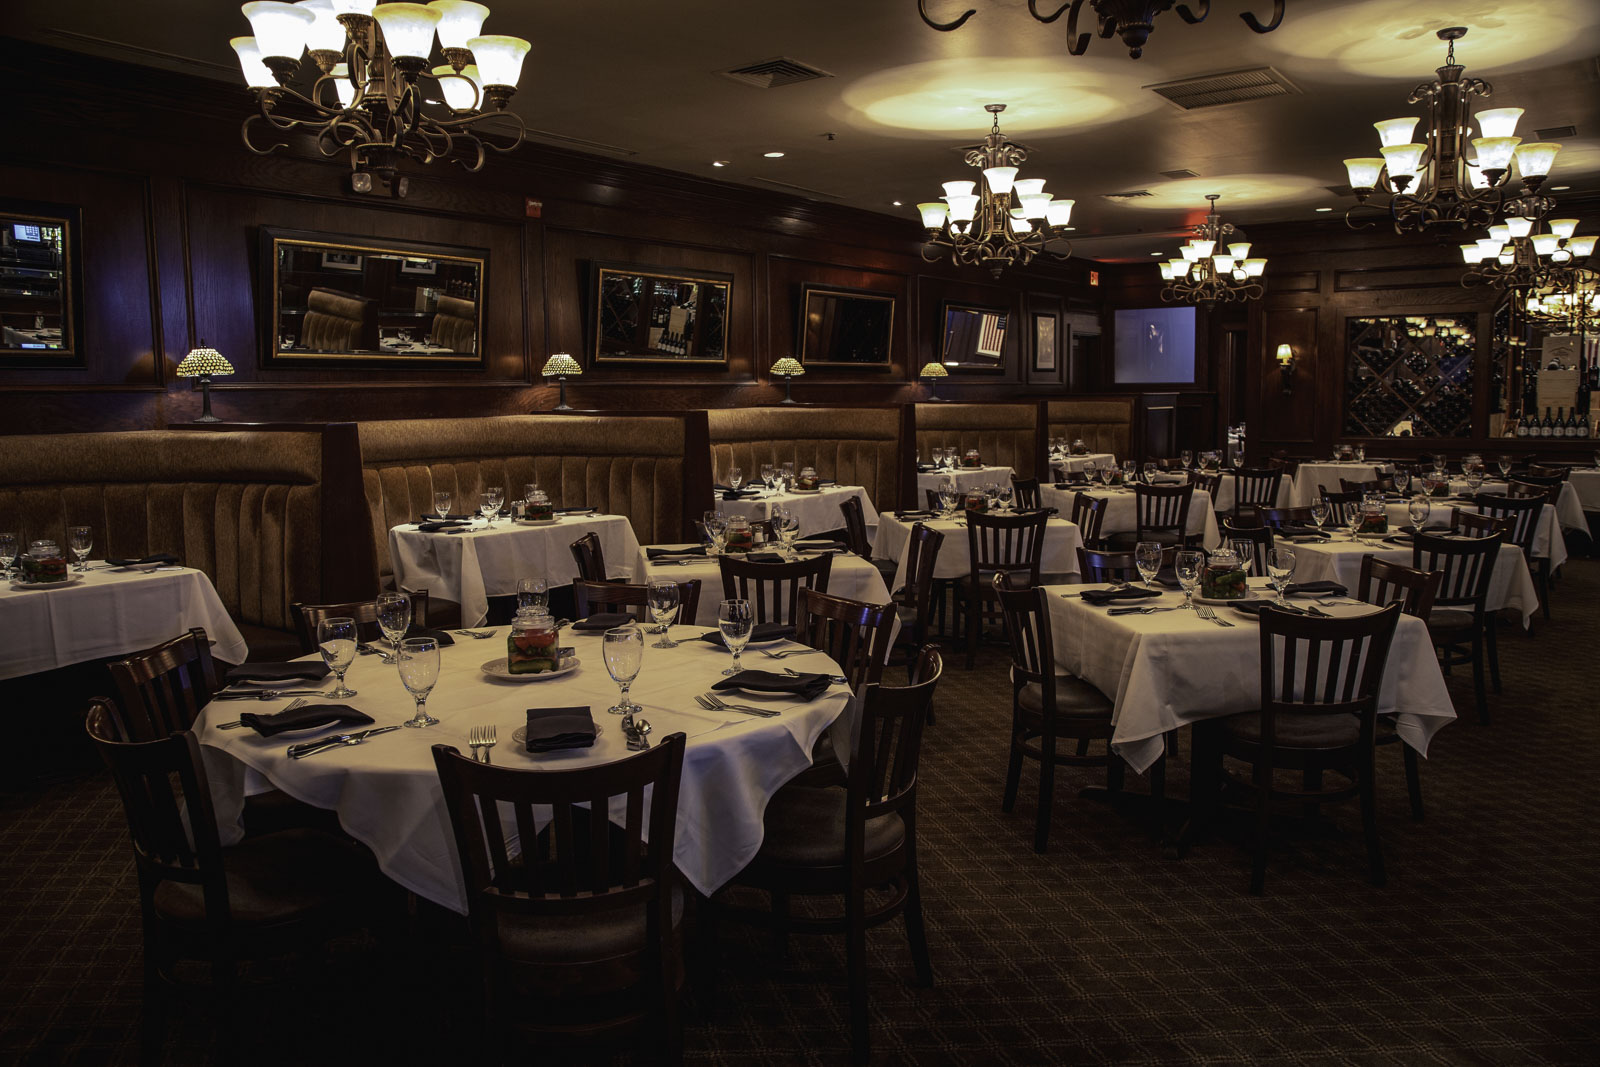 Bob's Steak & Chop House - Plano, TX (Dining Room)